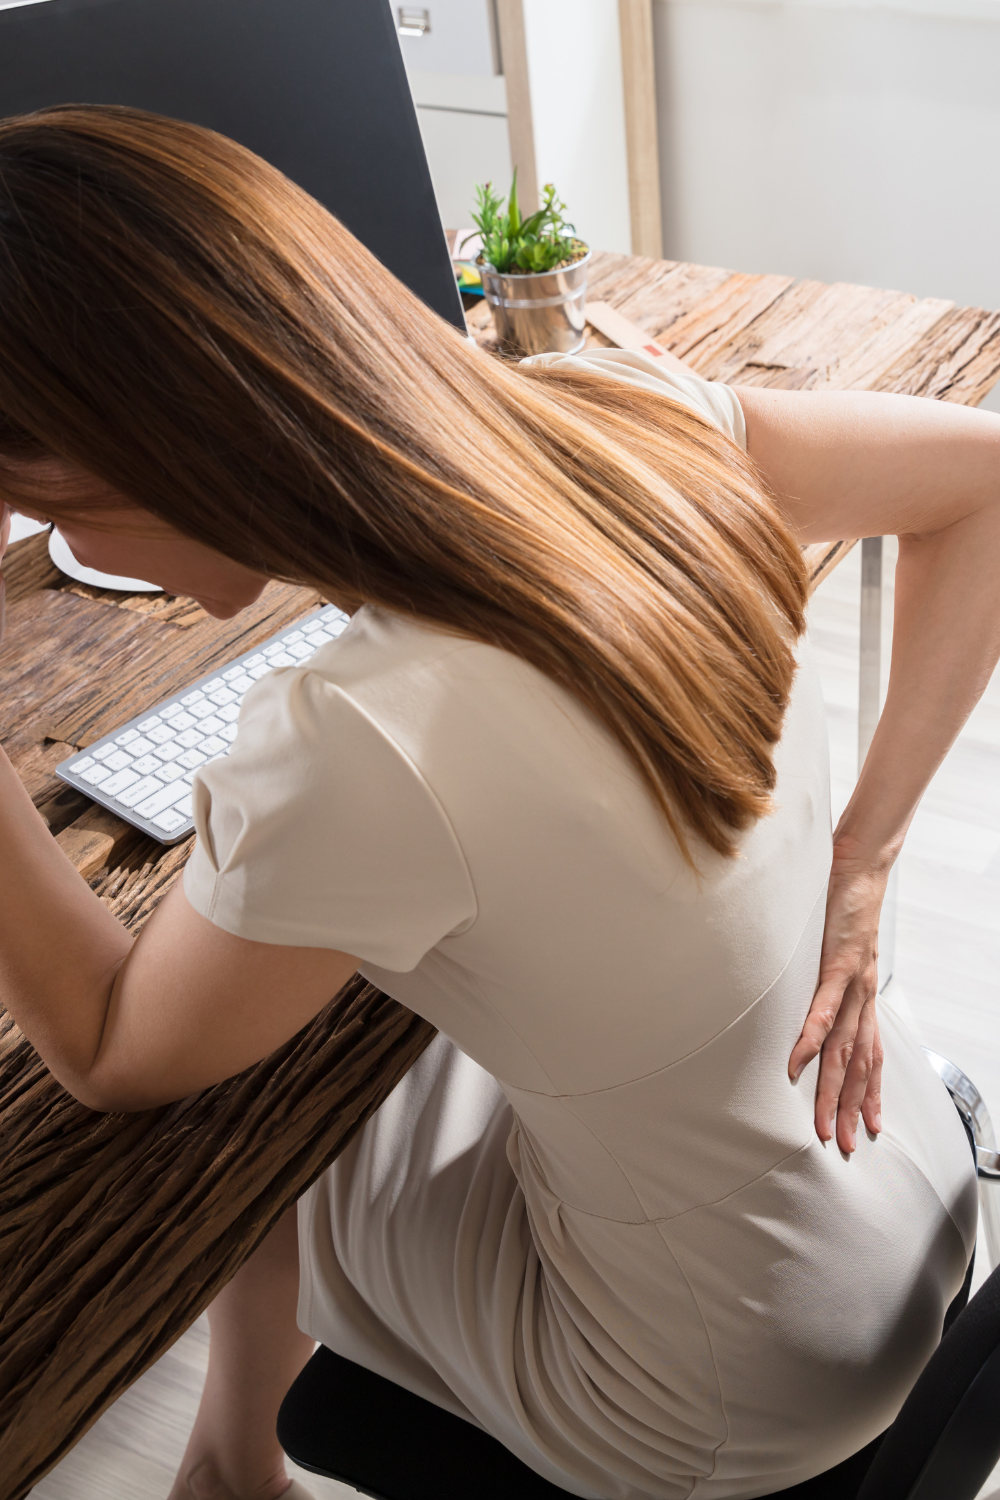 5 Types of Back Pains You Should be Informed About